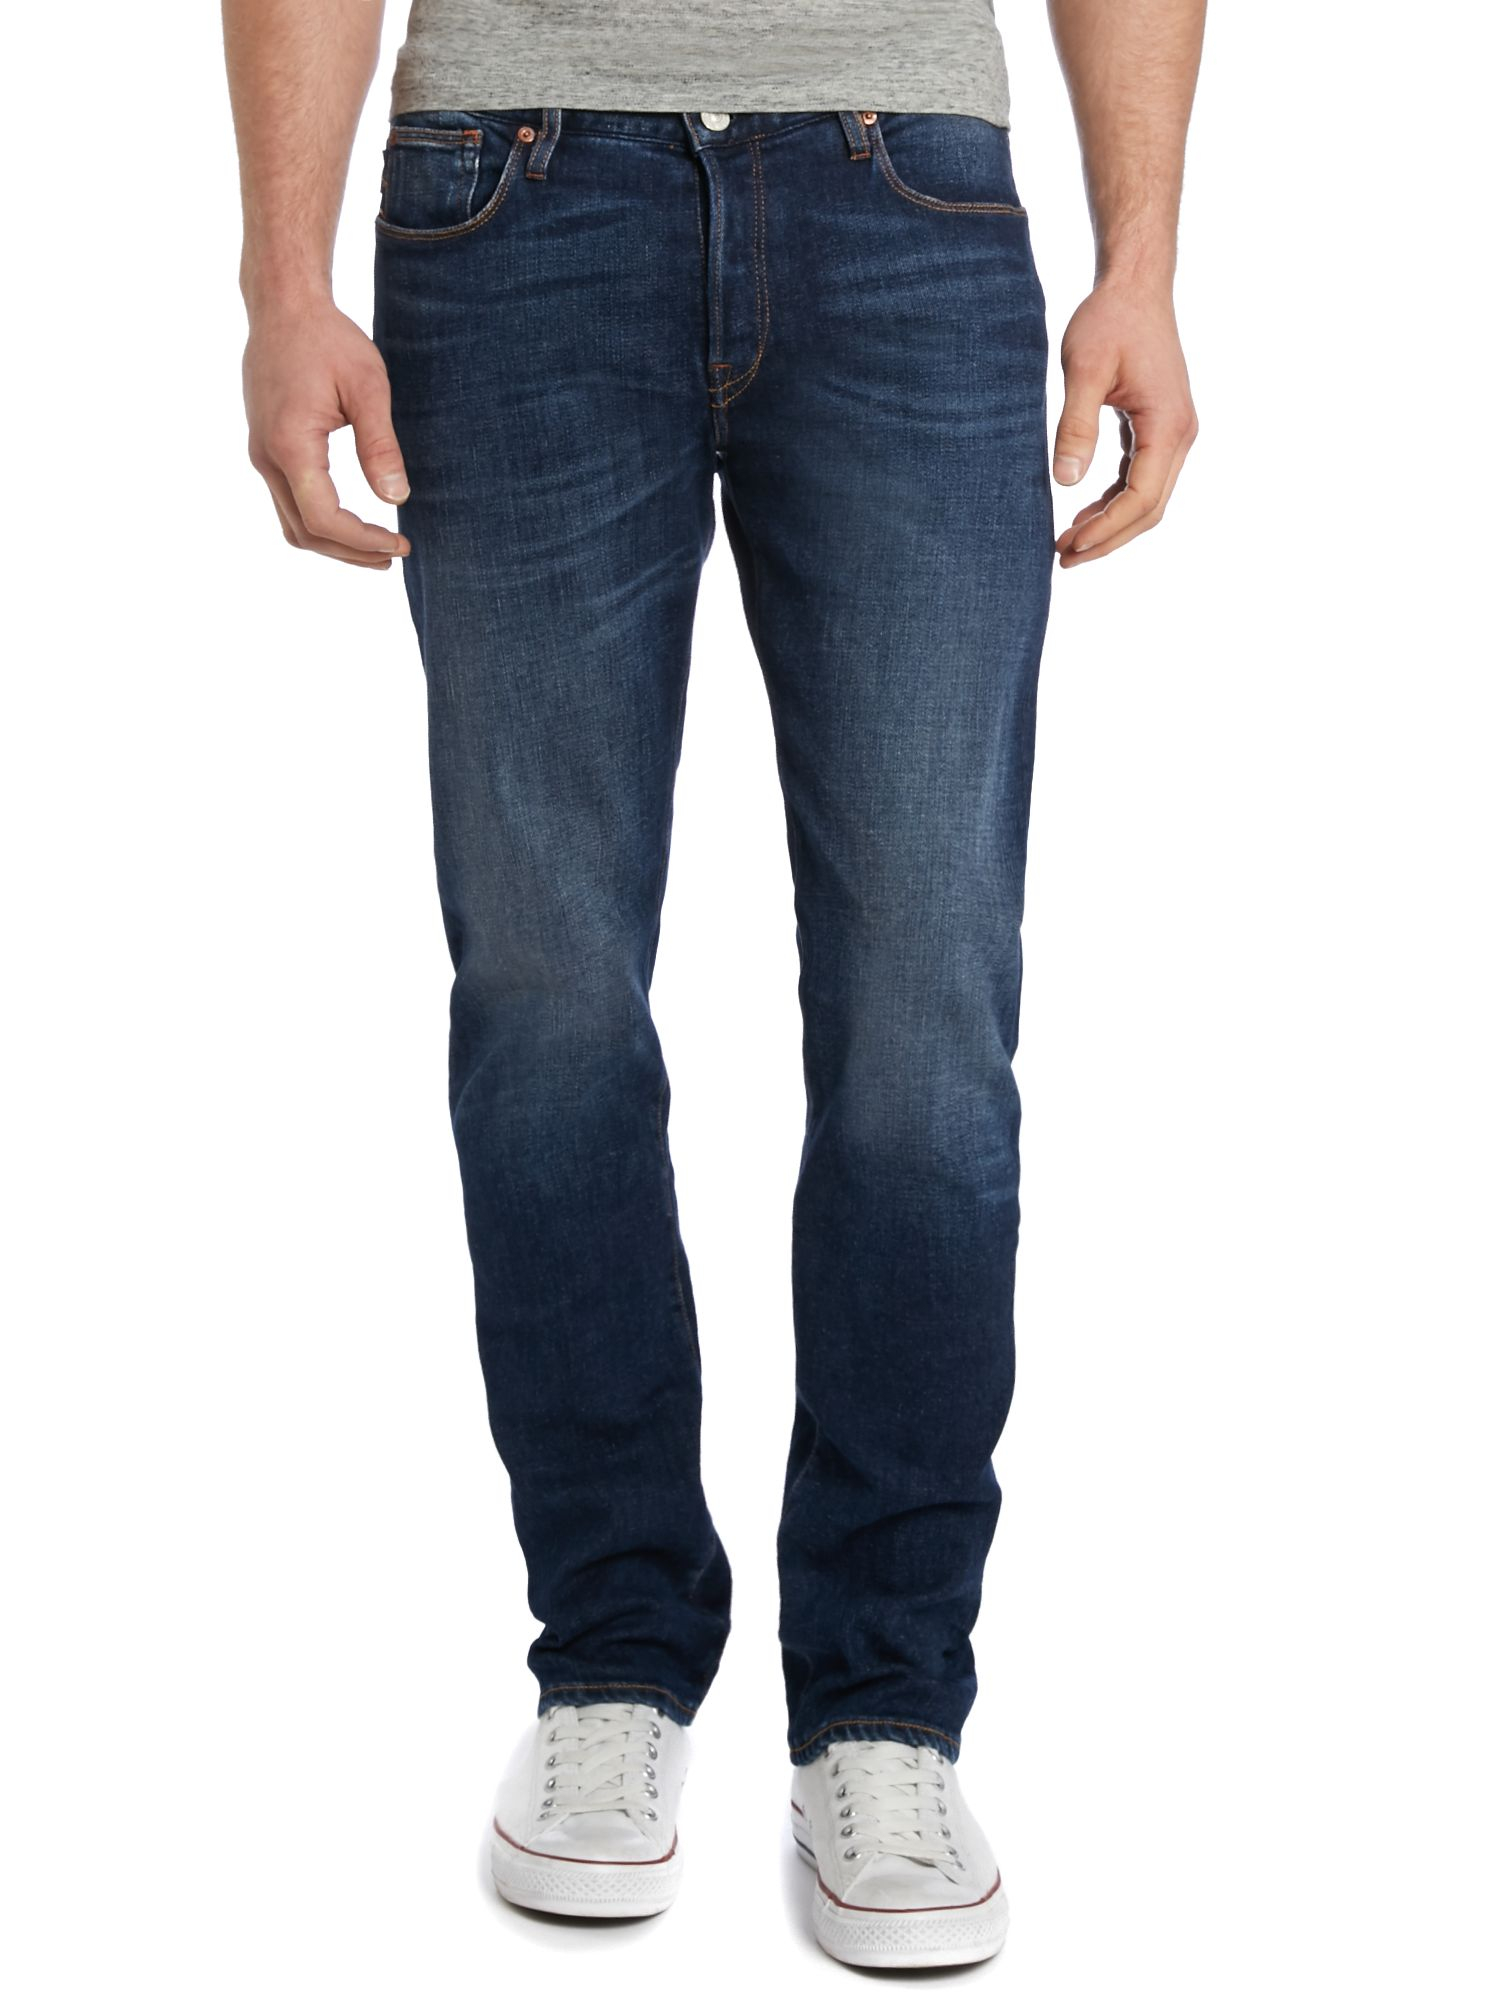 Paul smith Tapered Leg Dark Wash Jeans in Blue for Men | Lyst